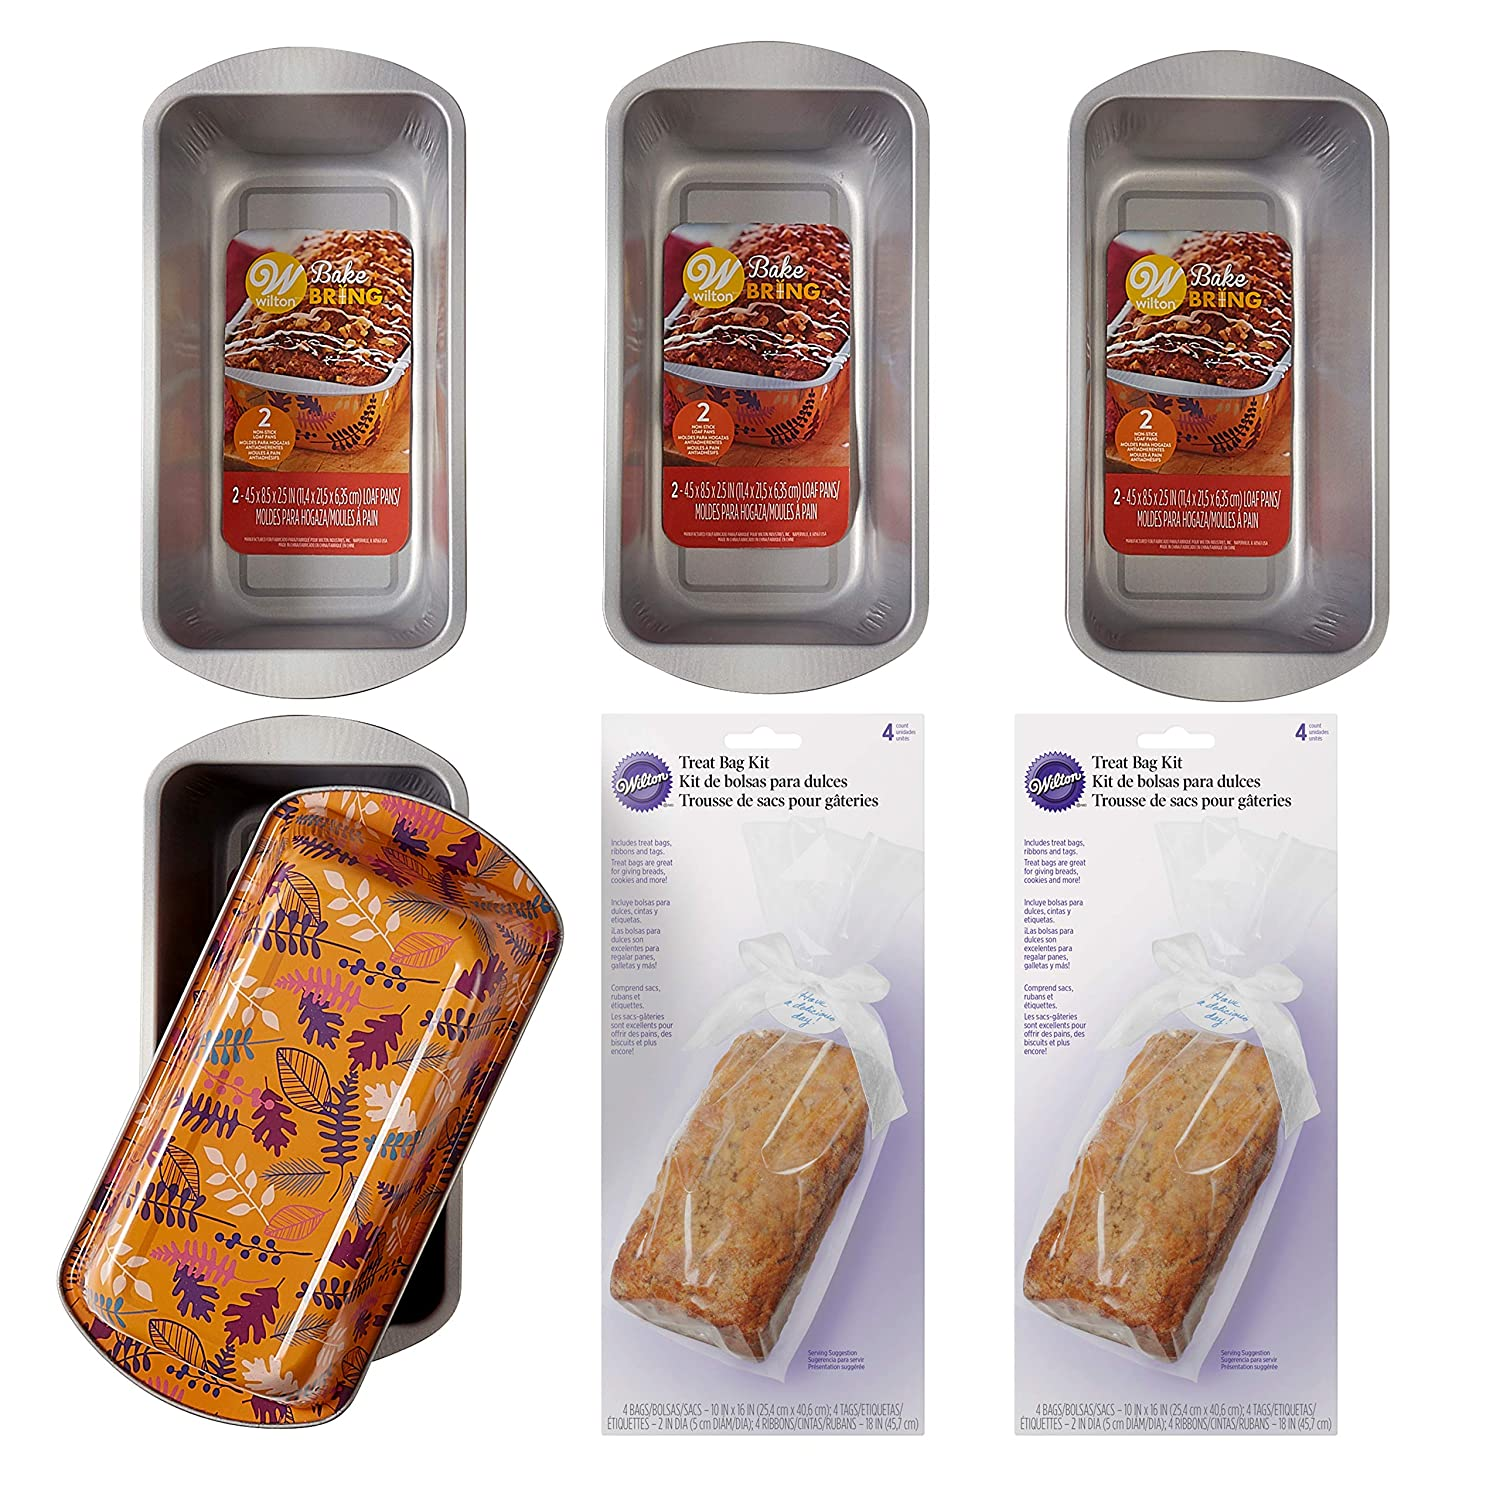 Wilton Bake and Bring Autumn Print Loaf Pans Gifting Kit, 10-Piece